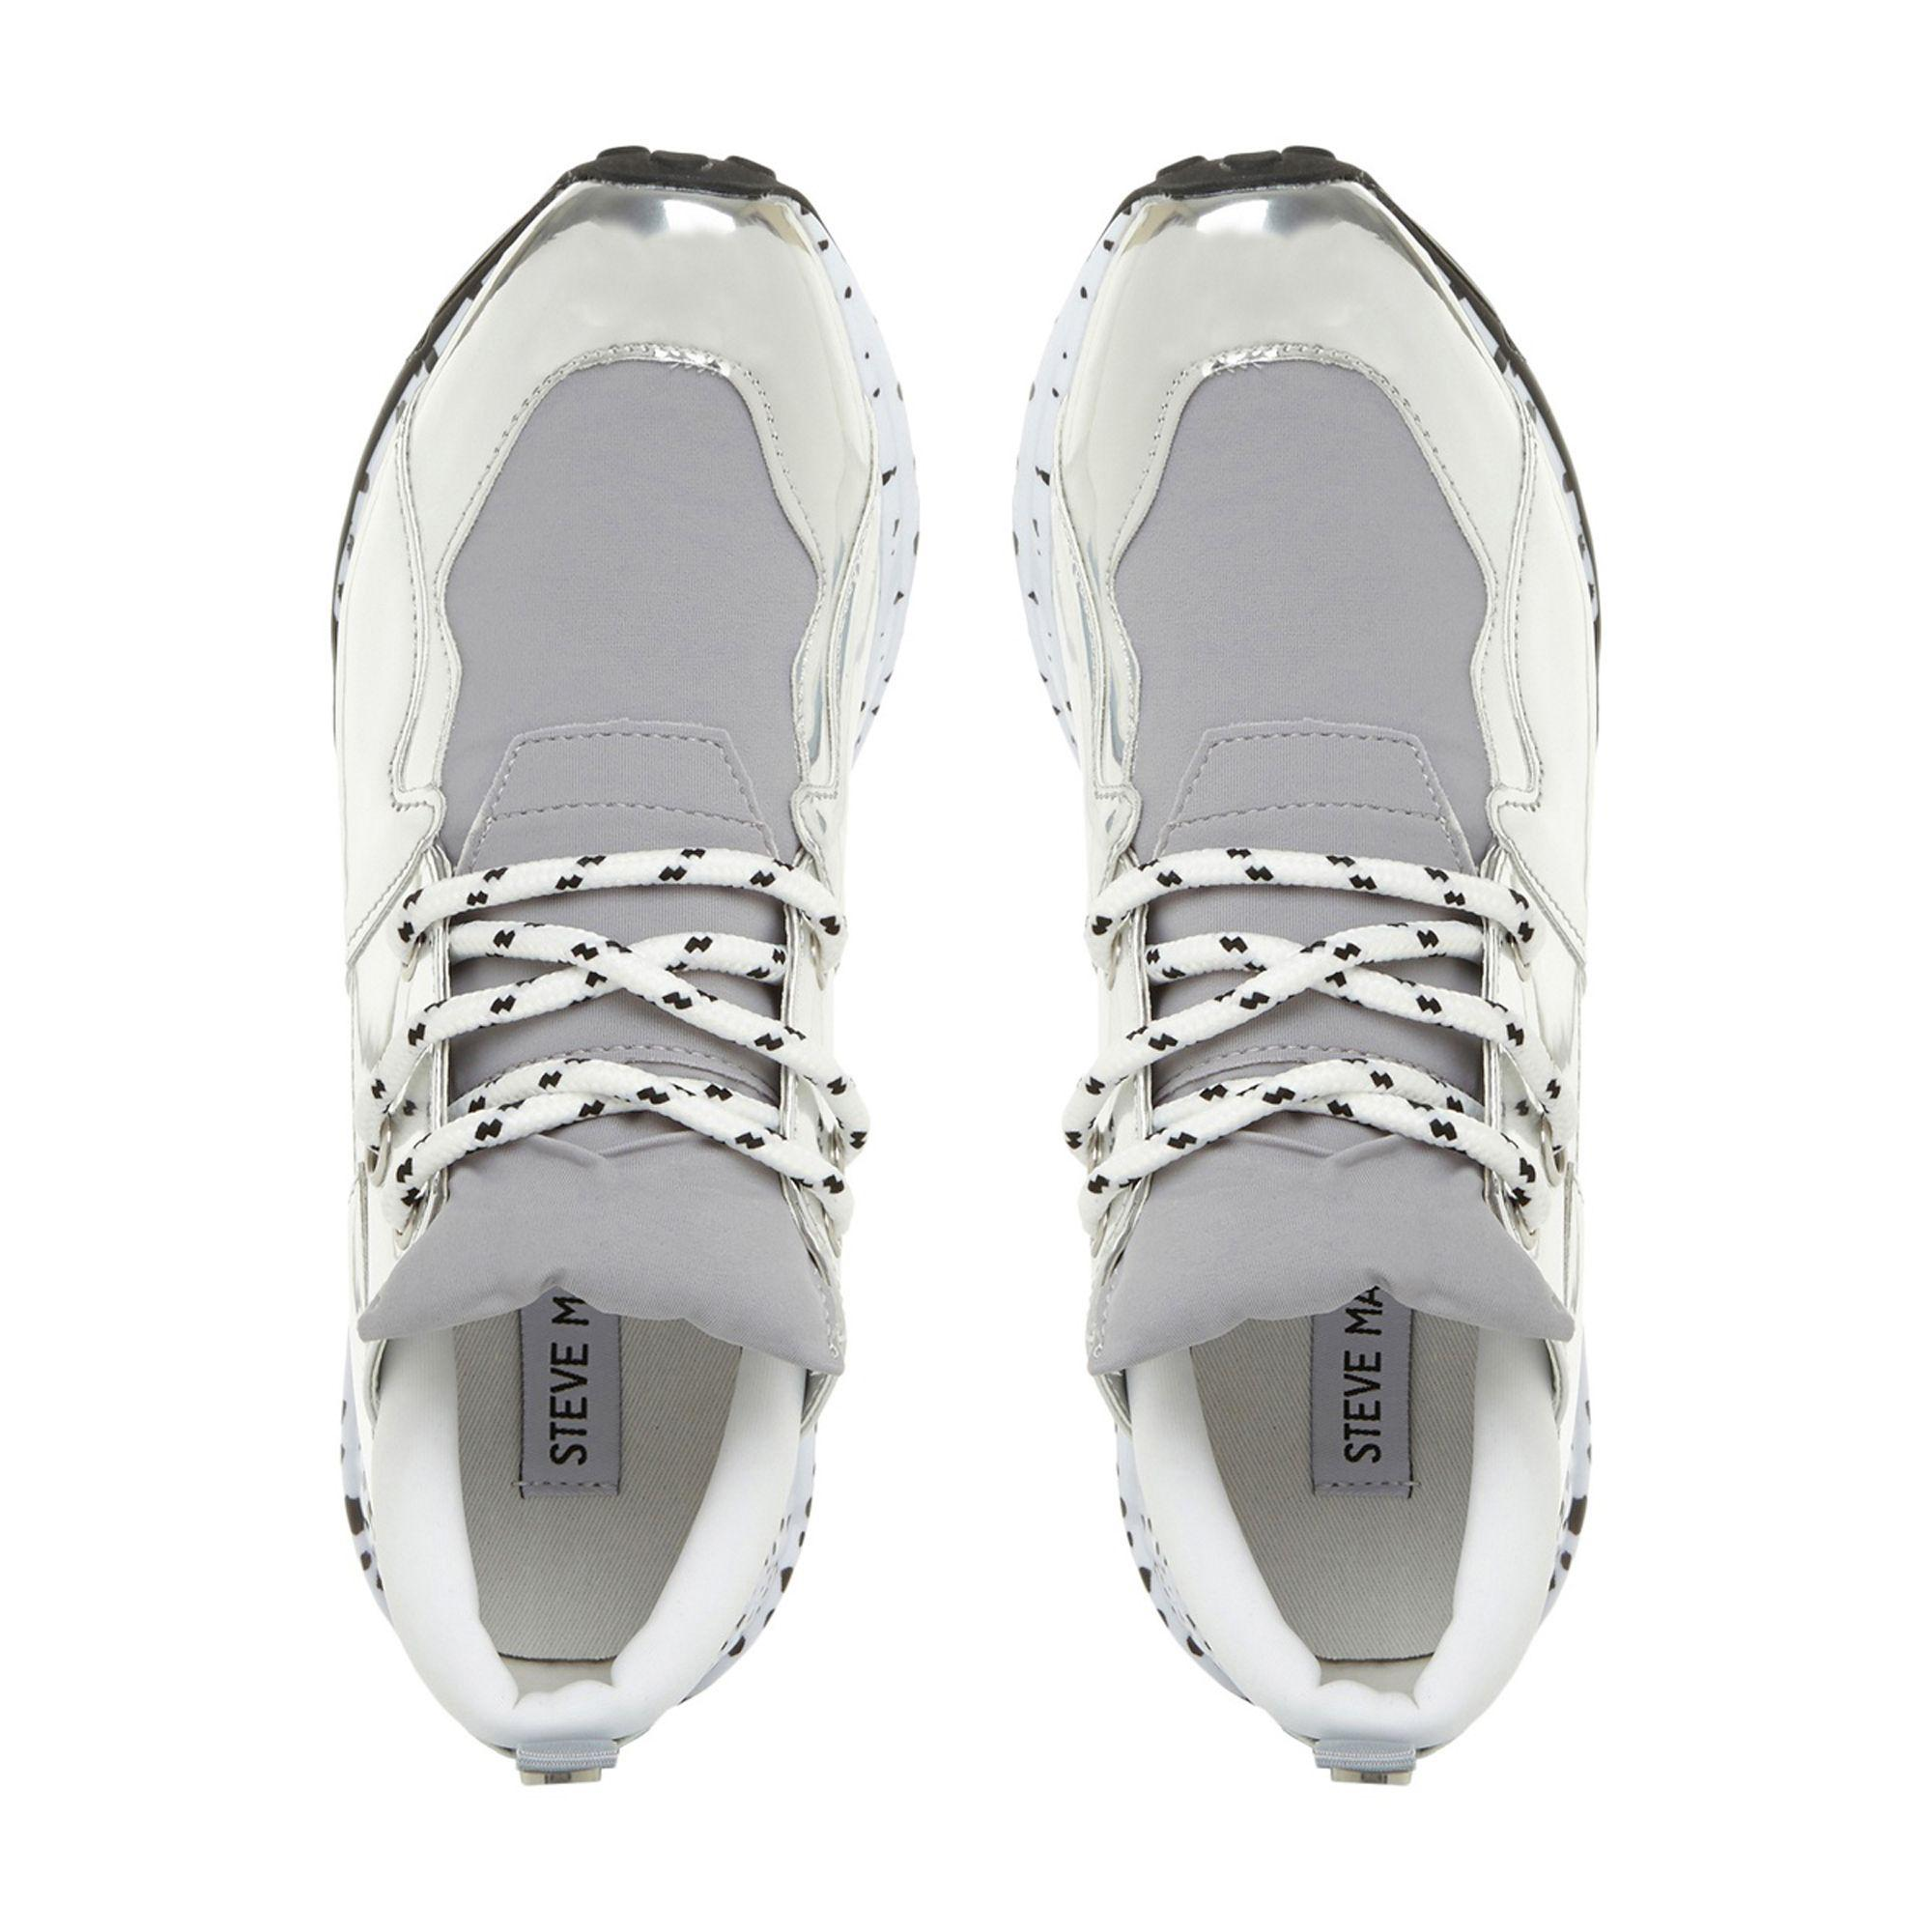 217d0dc3e9b Steve Madden - Metallic Silver  cliff  Platform Lace Up Trainers - Lyst.  View fullscreen